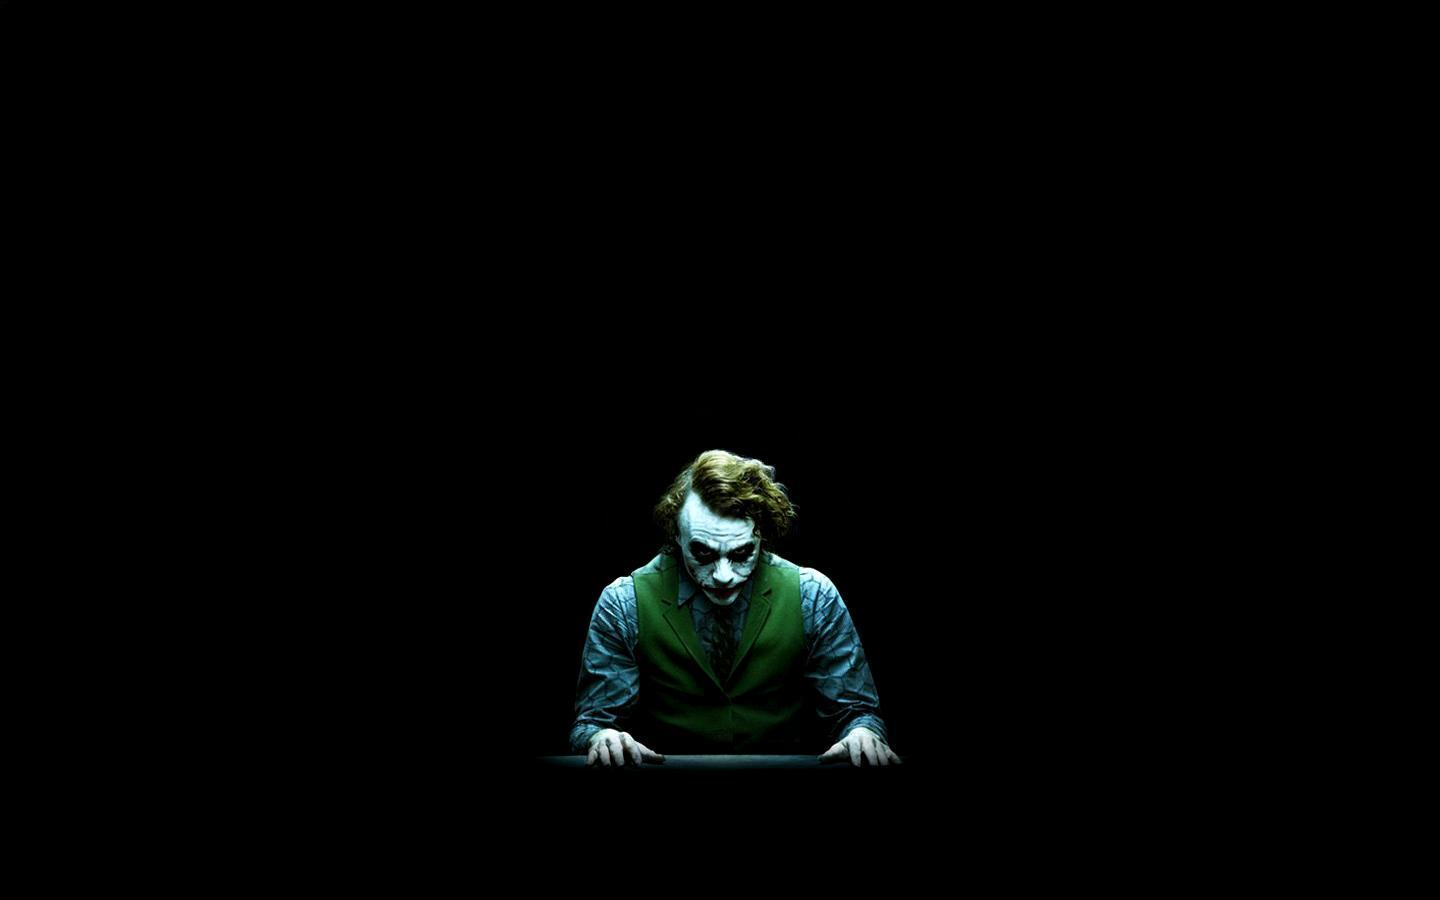 Joker Desktop Backgrounds 1440x900